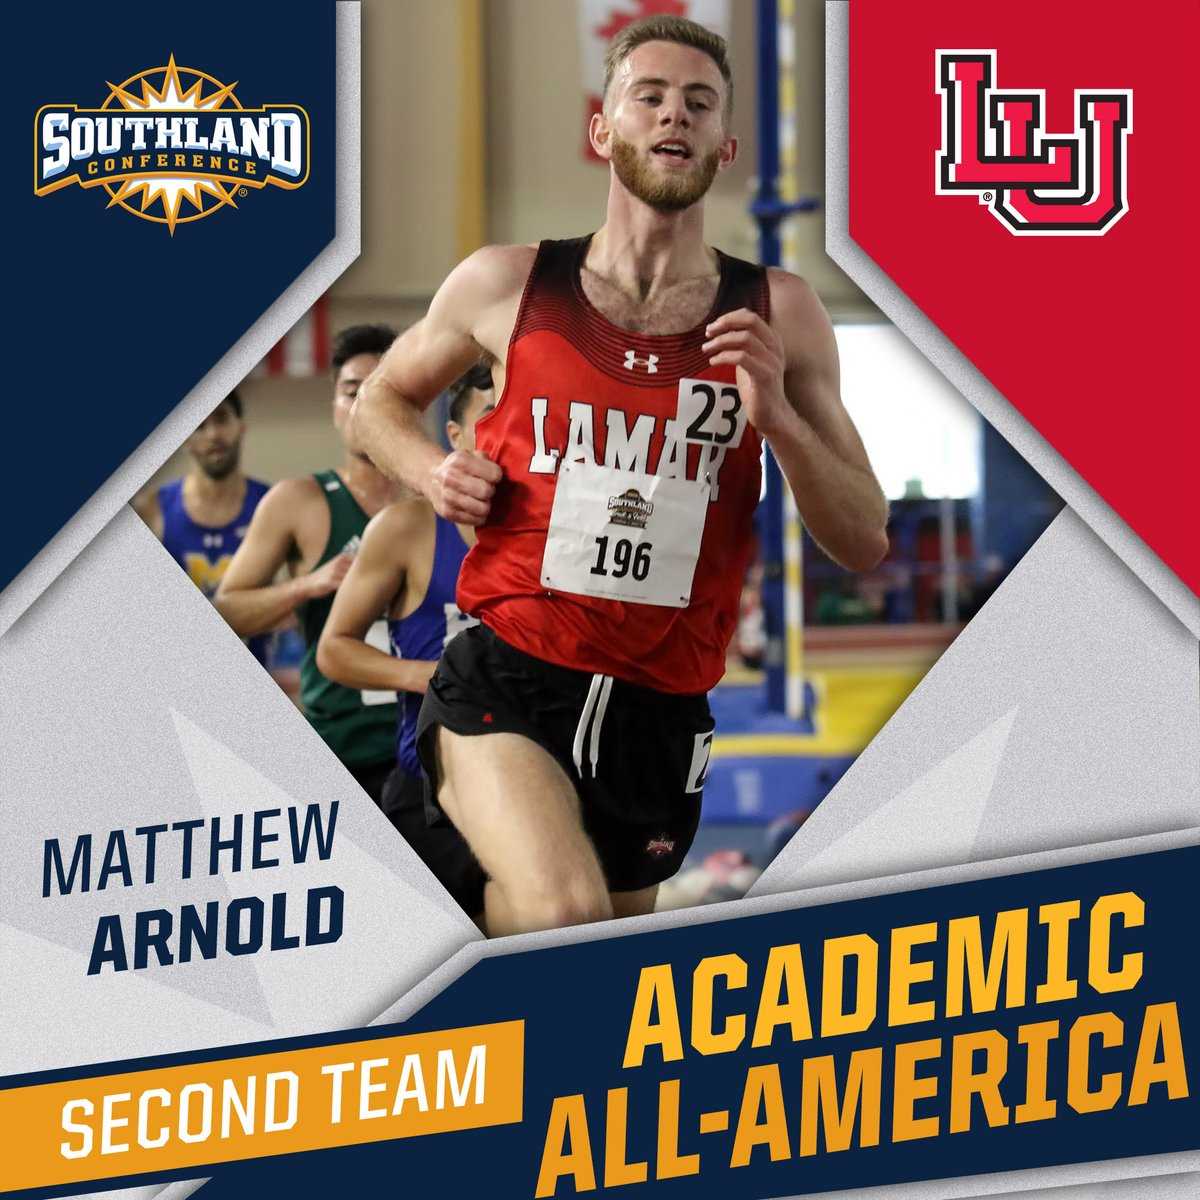 .@LamarTandF's Matthew Arnold earns @CoSIDAAcadAA Second Team XC/T&F Academic All-America honors❗️  Arnold completed the 2019-20 school year with 4⃣ top-five finishes to go along with a perfect 4⃣.0⃣ GPA as graduate English major. #WeAreLU #SouthlandStrong https://t.co/TknblE9C61